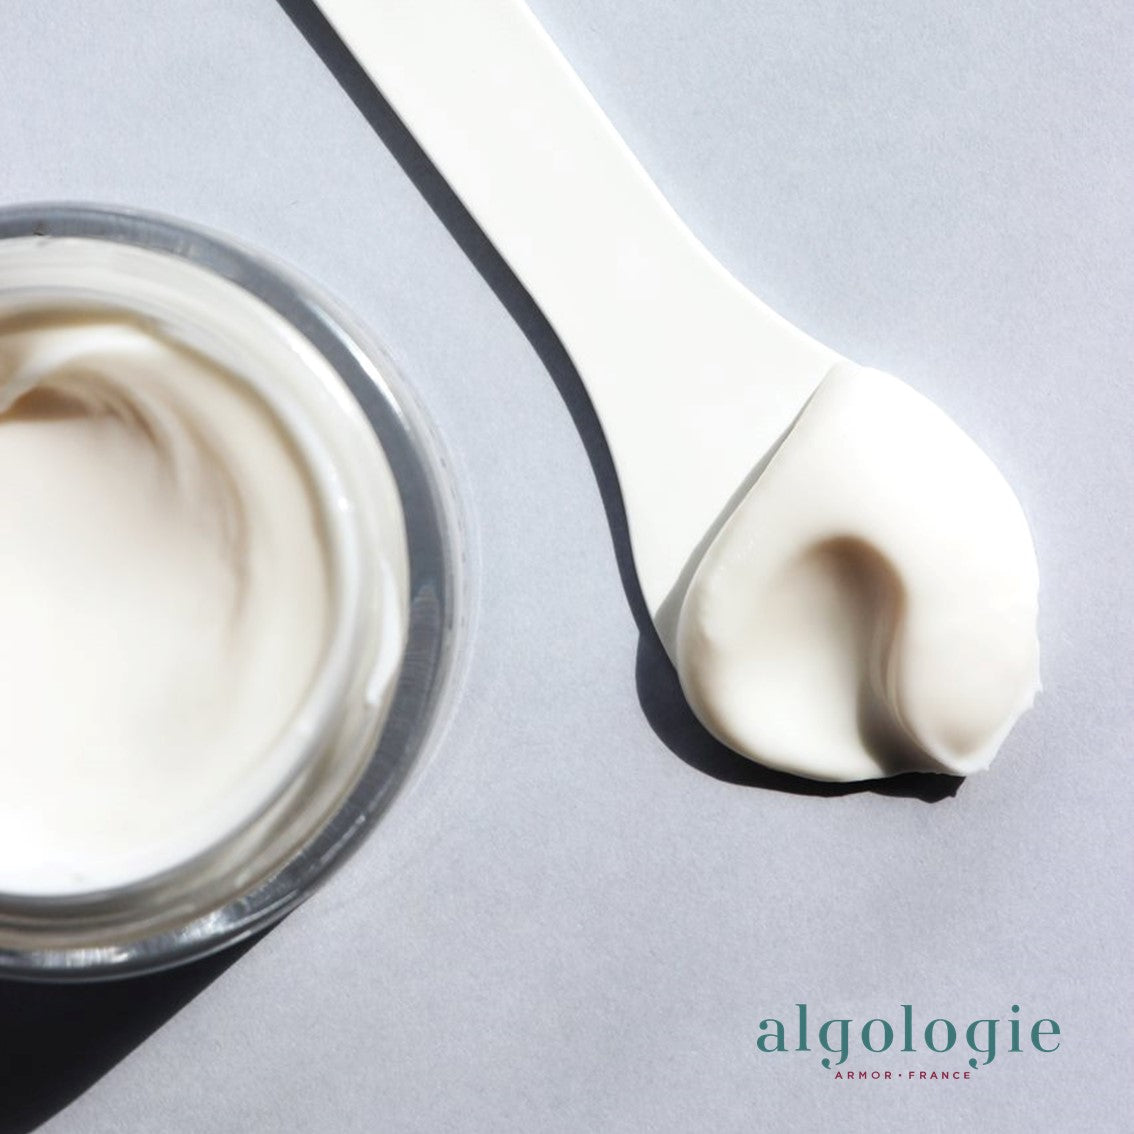 ALGOLOGIE Revitalising Hydro-Protective Cream (50ml Jar)